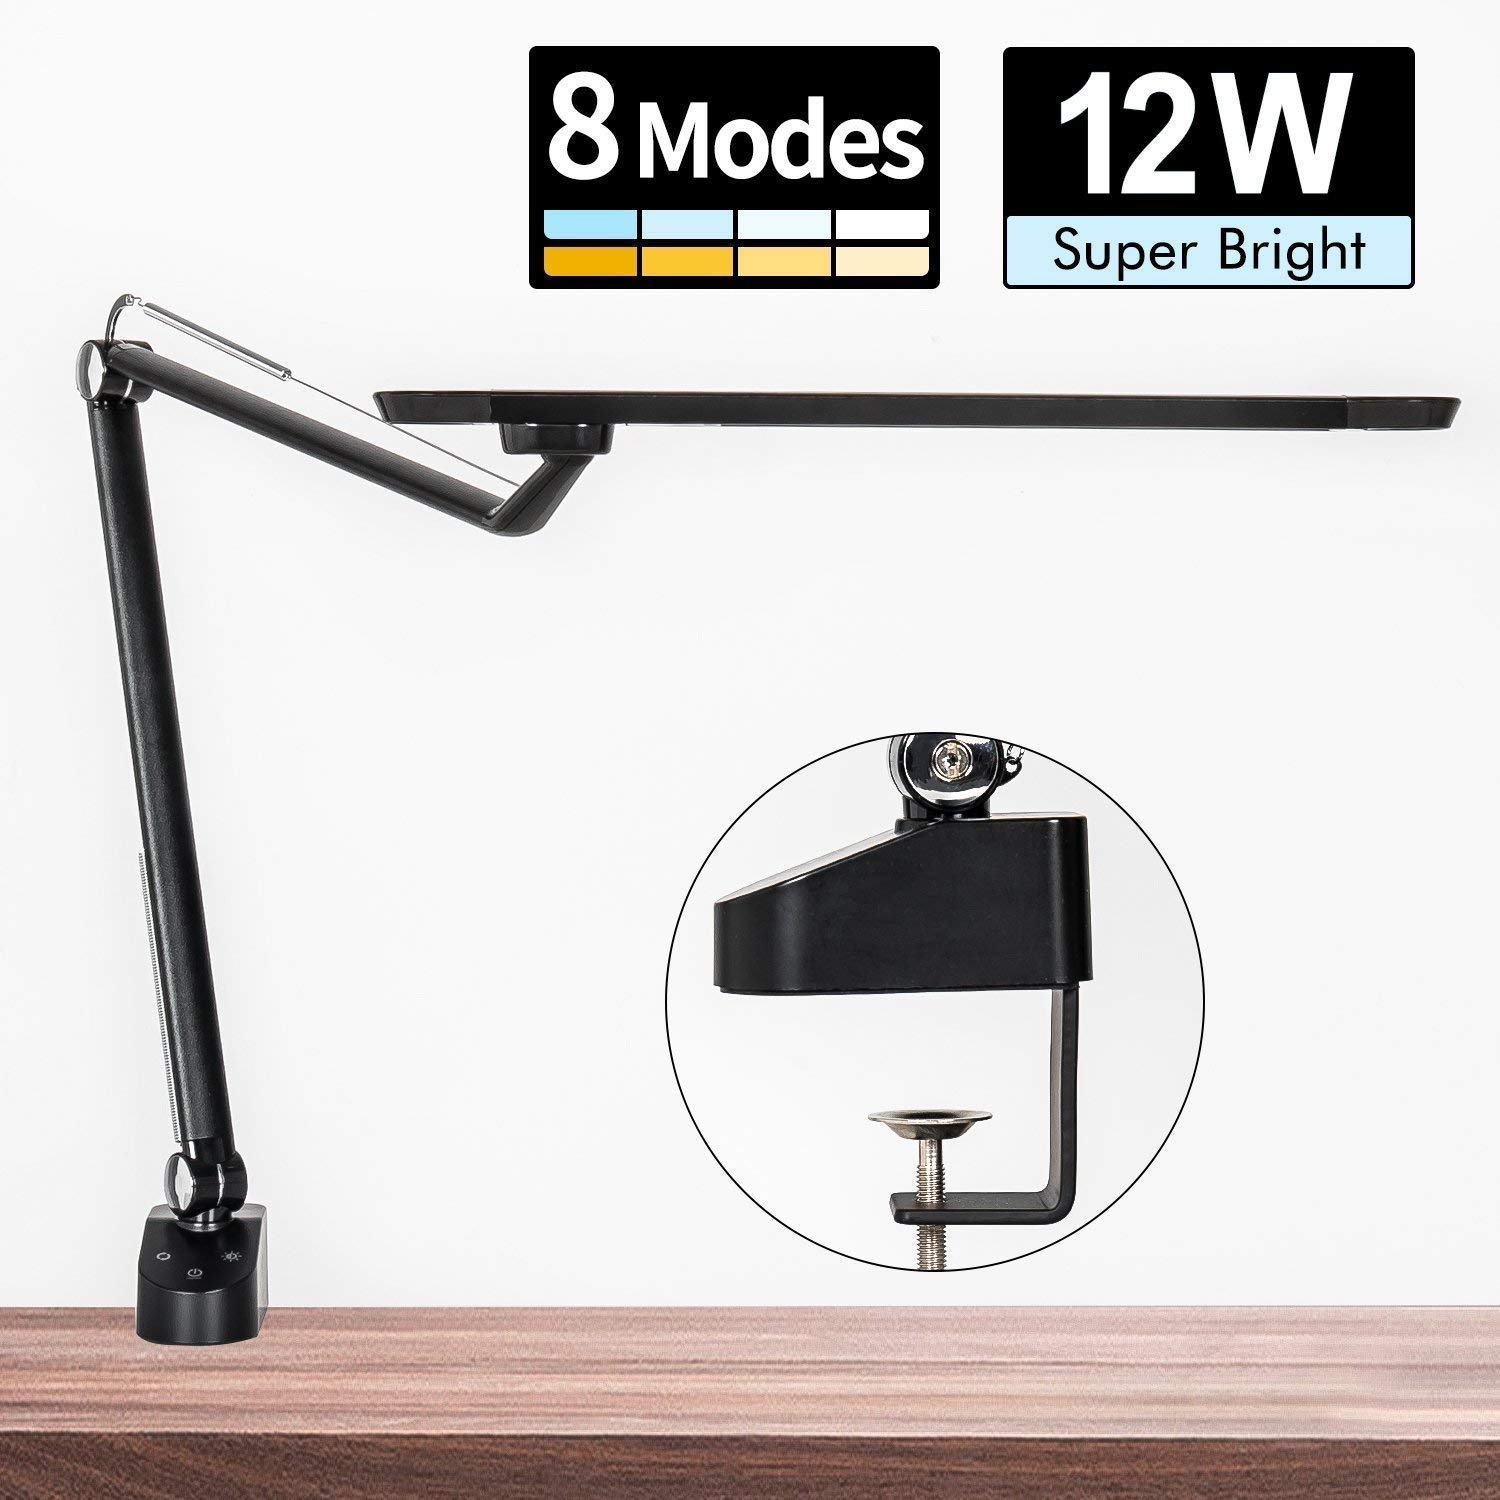 Amico 12W LED Architect Desk Lamp/Clamp Lamp/Metal Swing Arm Task Lamp (Eye-Protective, Touch Control, Gradural Dimming/8 Color Modes, Memory Function) Highly Adjustable Office/Work Light